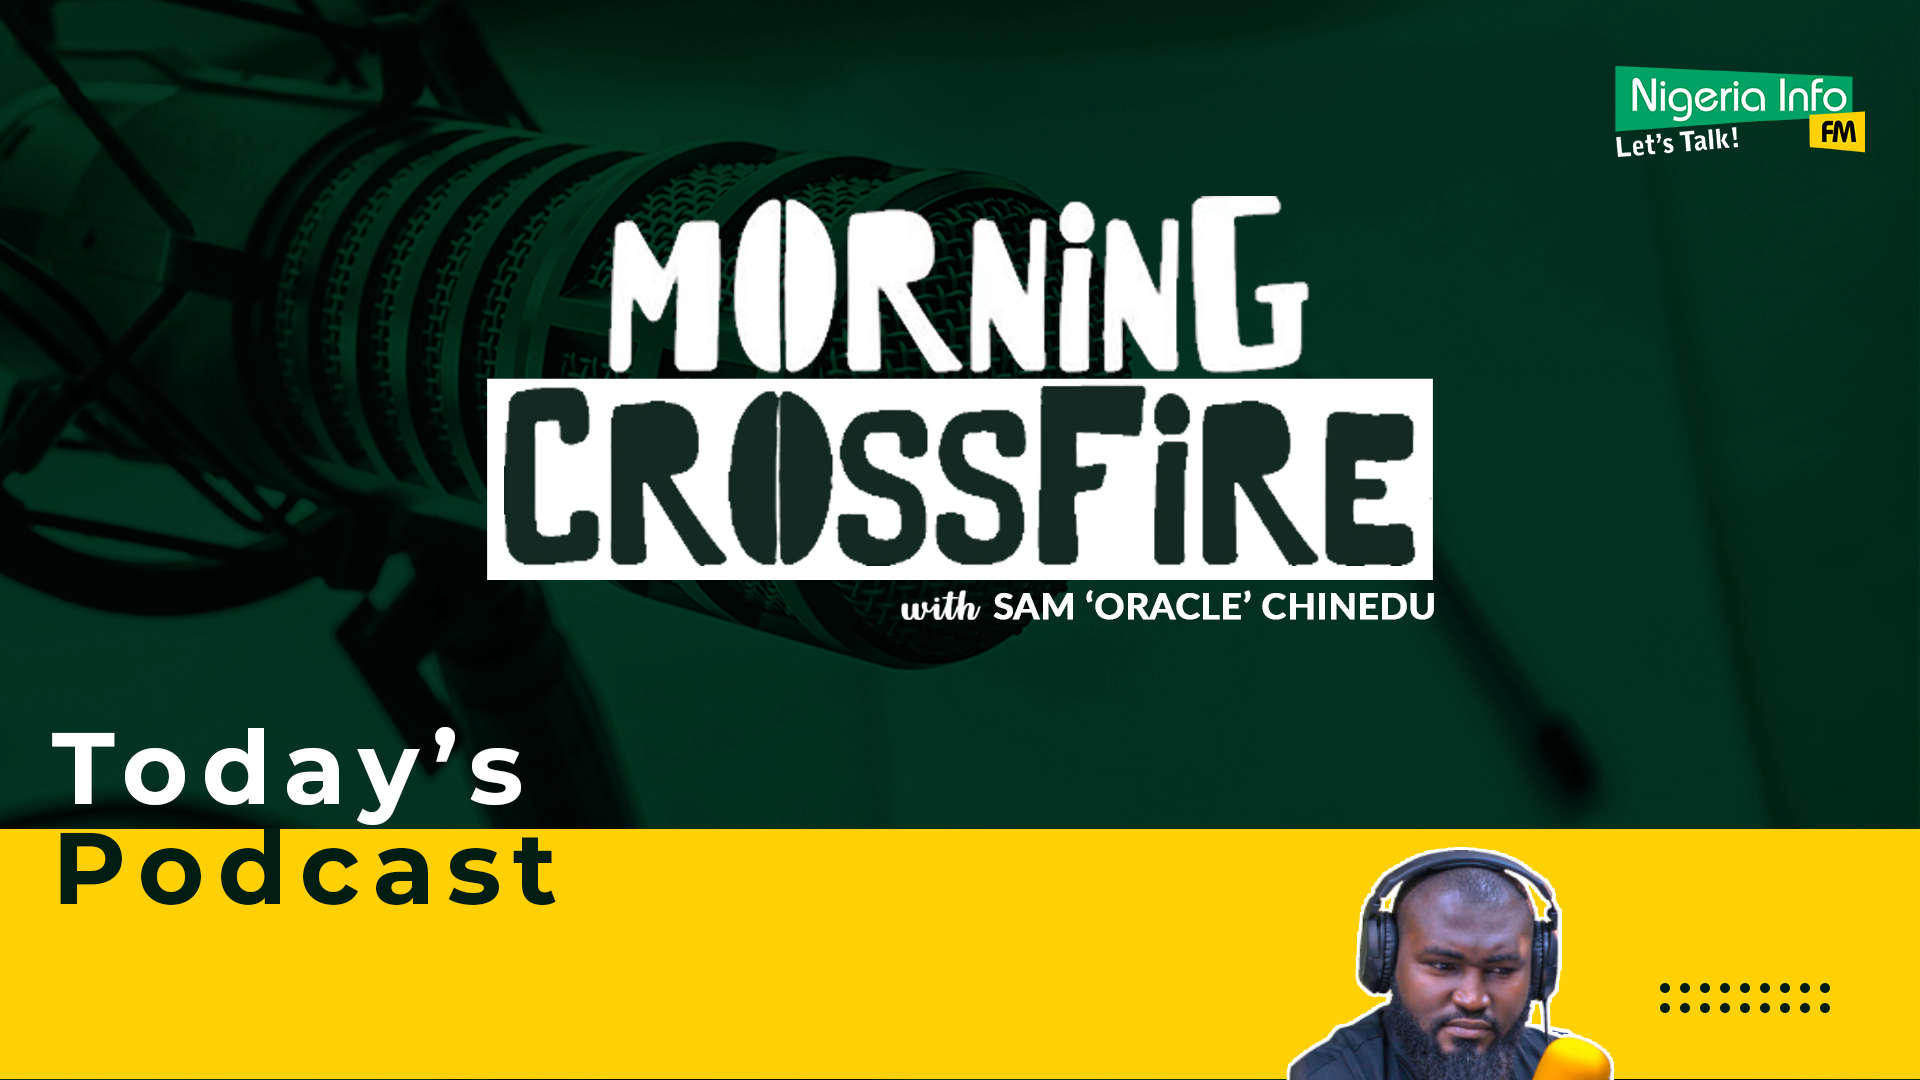 Morning Crossfire with Sam